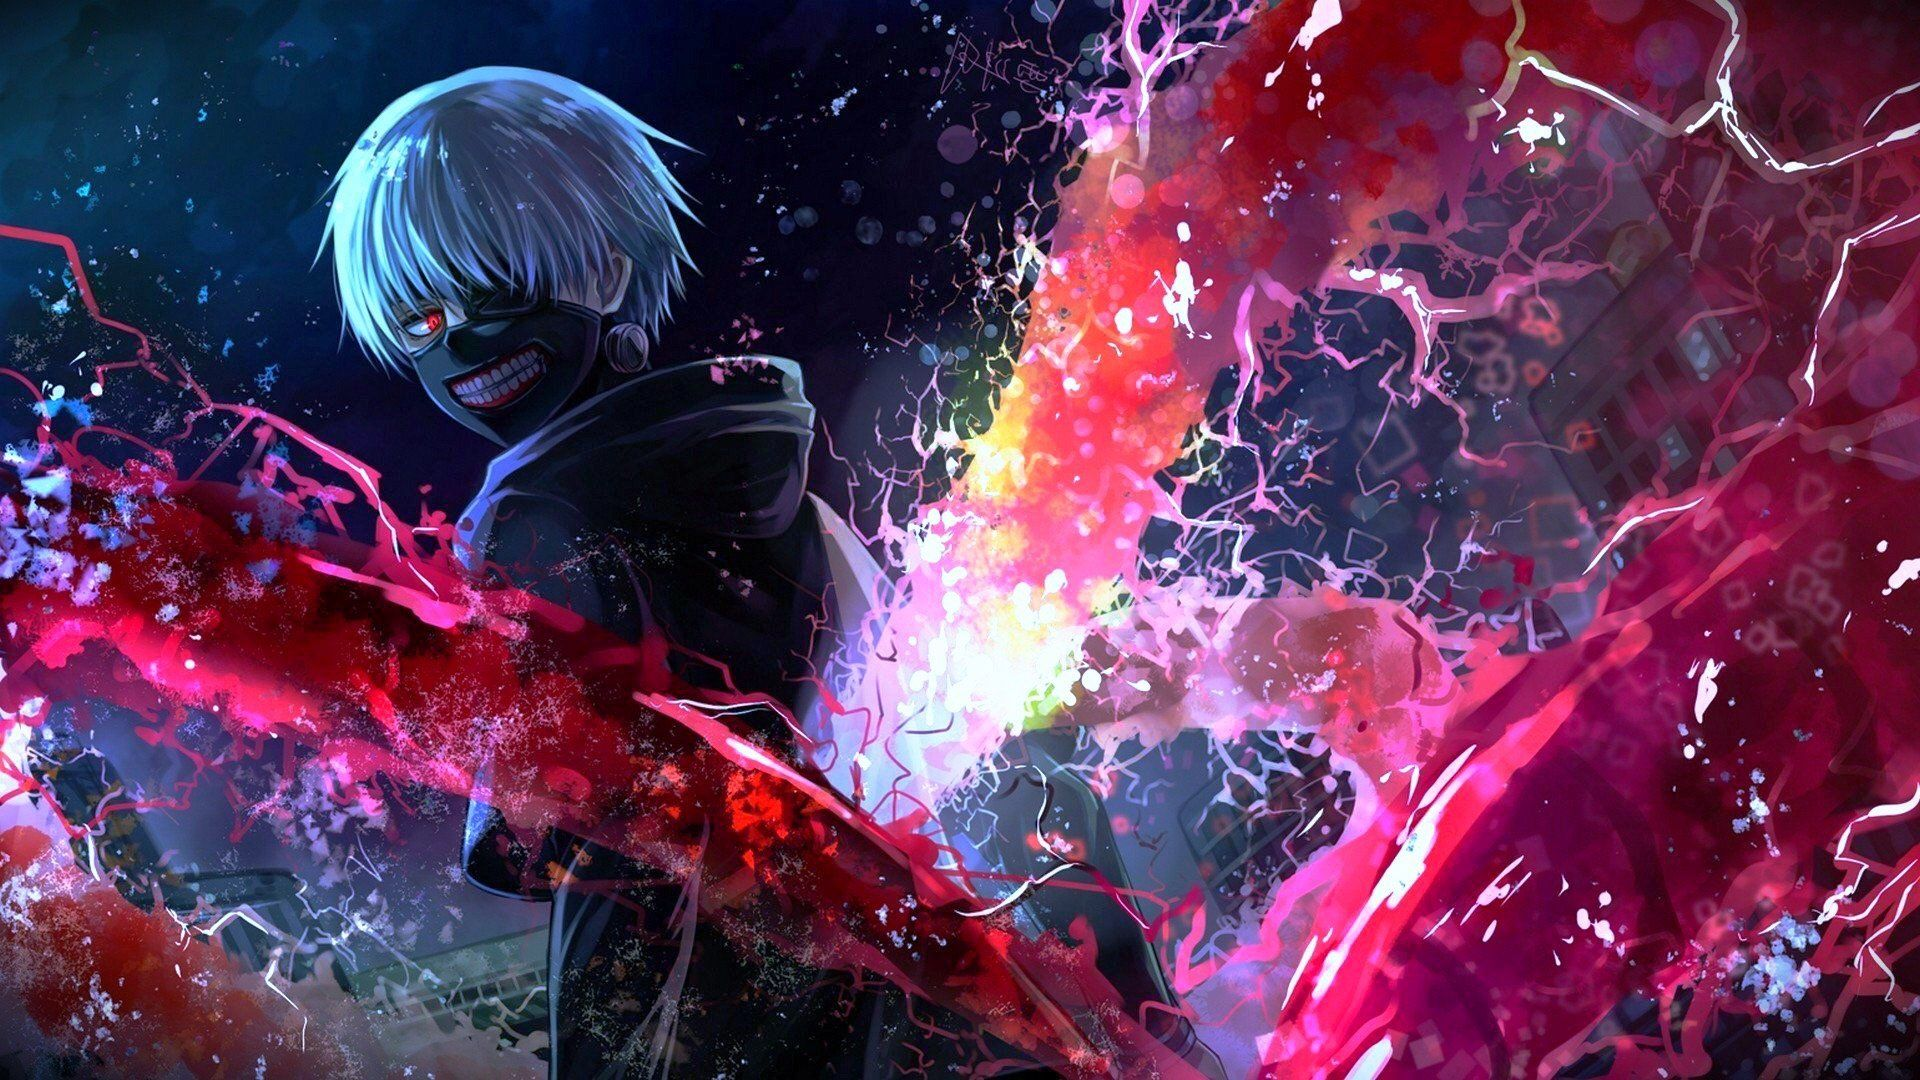 Kaneki Wallpaper is a Fine Substitute For Real Wallpaper